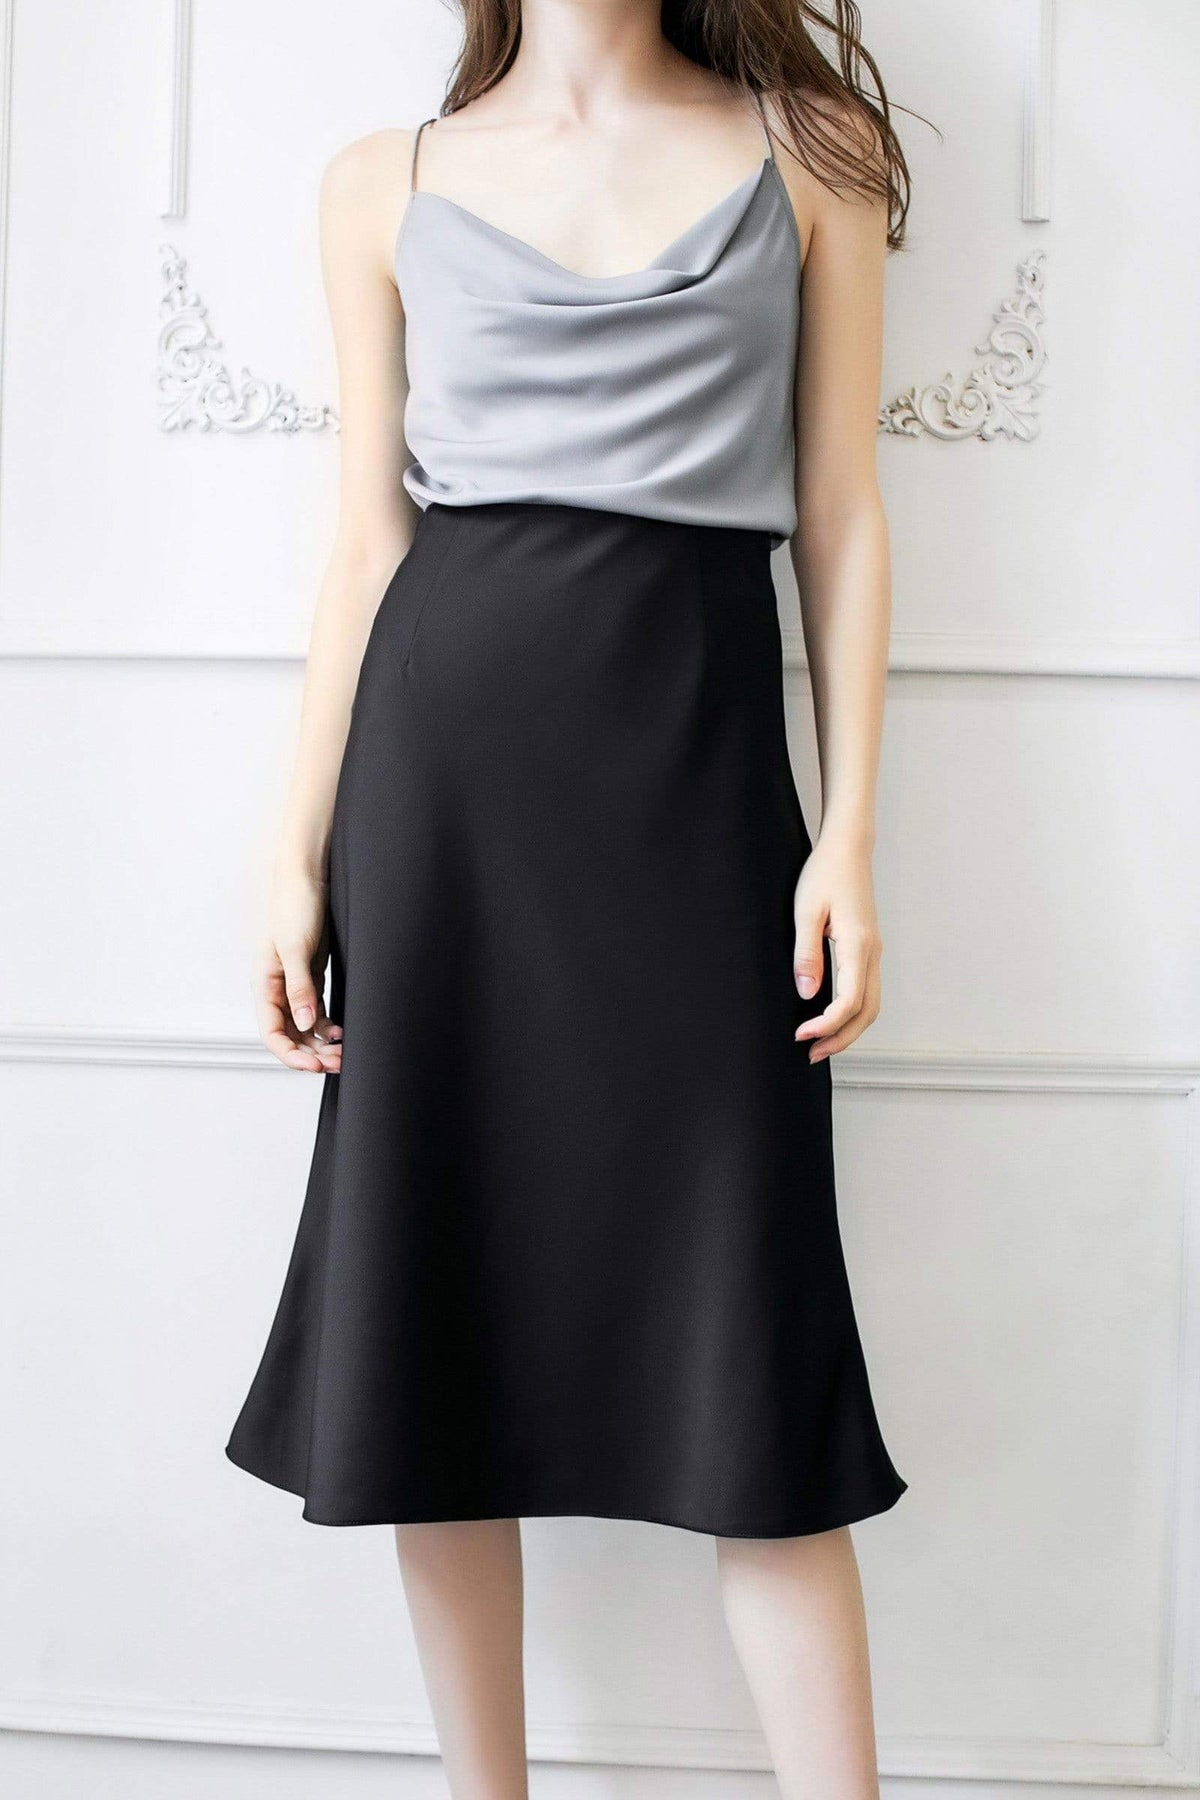 Desiree Black Slip Skirt